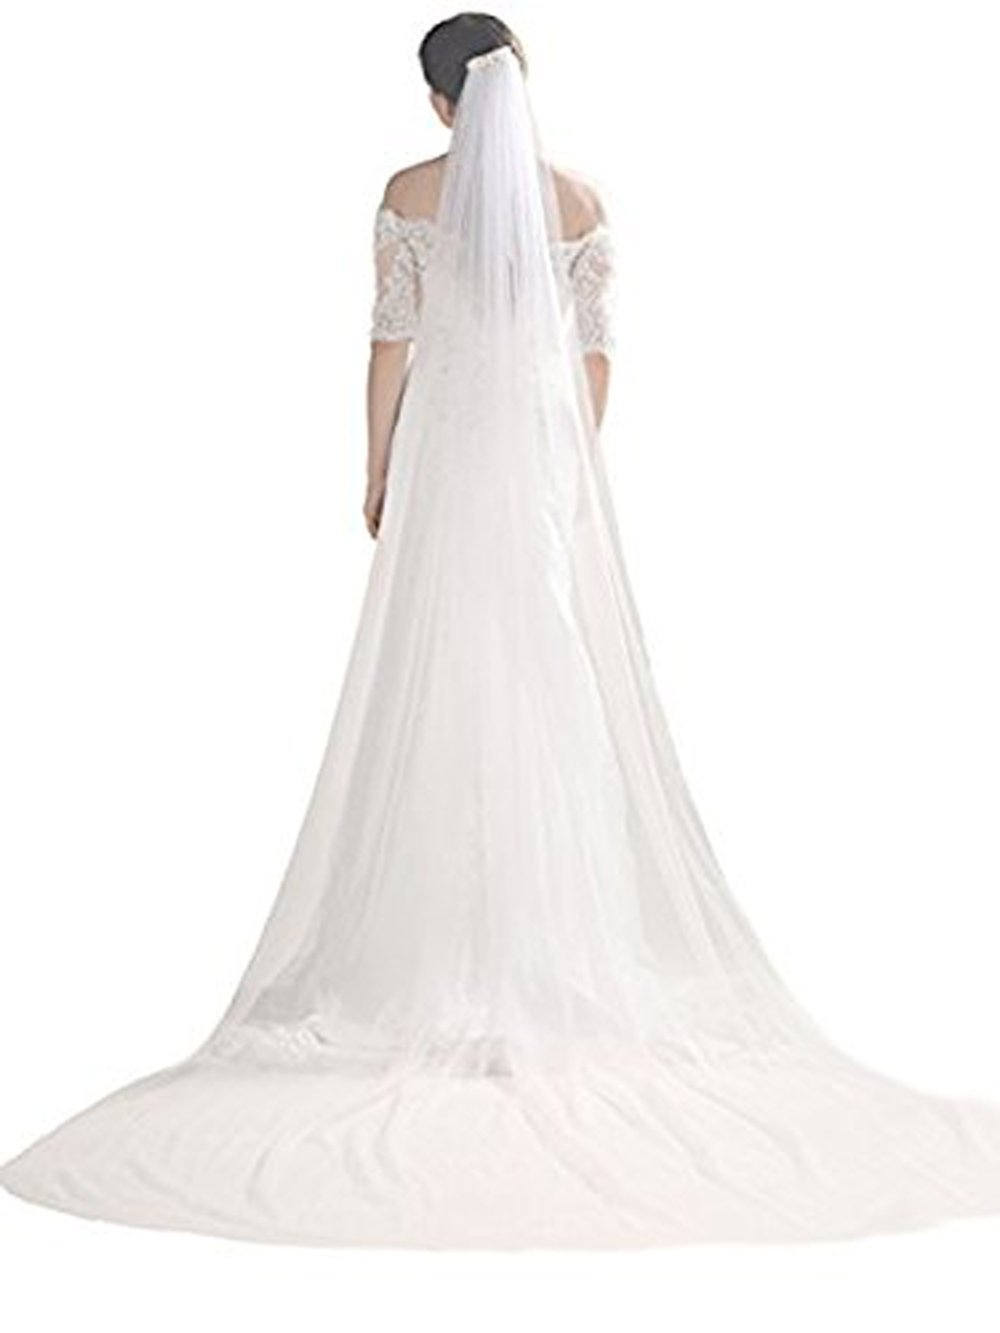 Bridalvenus Wedding Veil and Headpieces Bridal Cathedral Veil Chapel Veil with Comb (118 inches, One Tiers Veil) (Ivory)